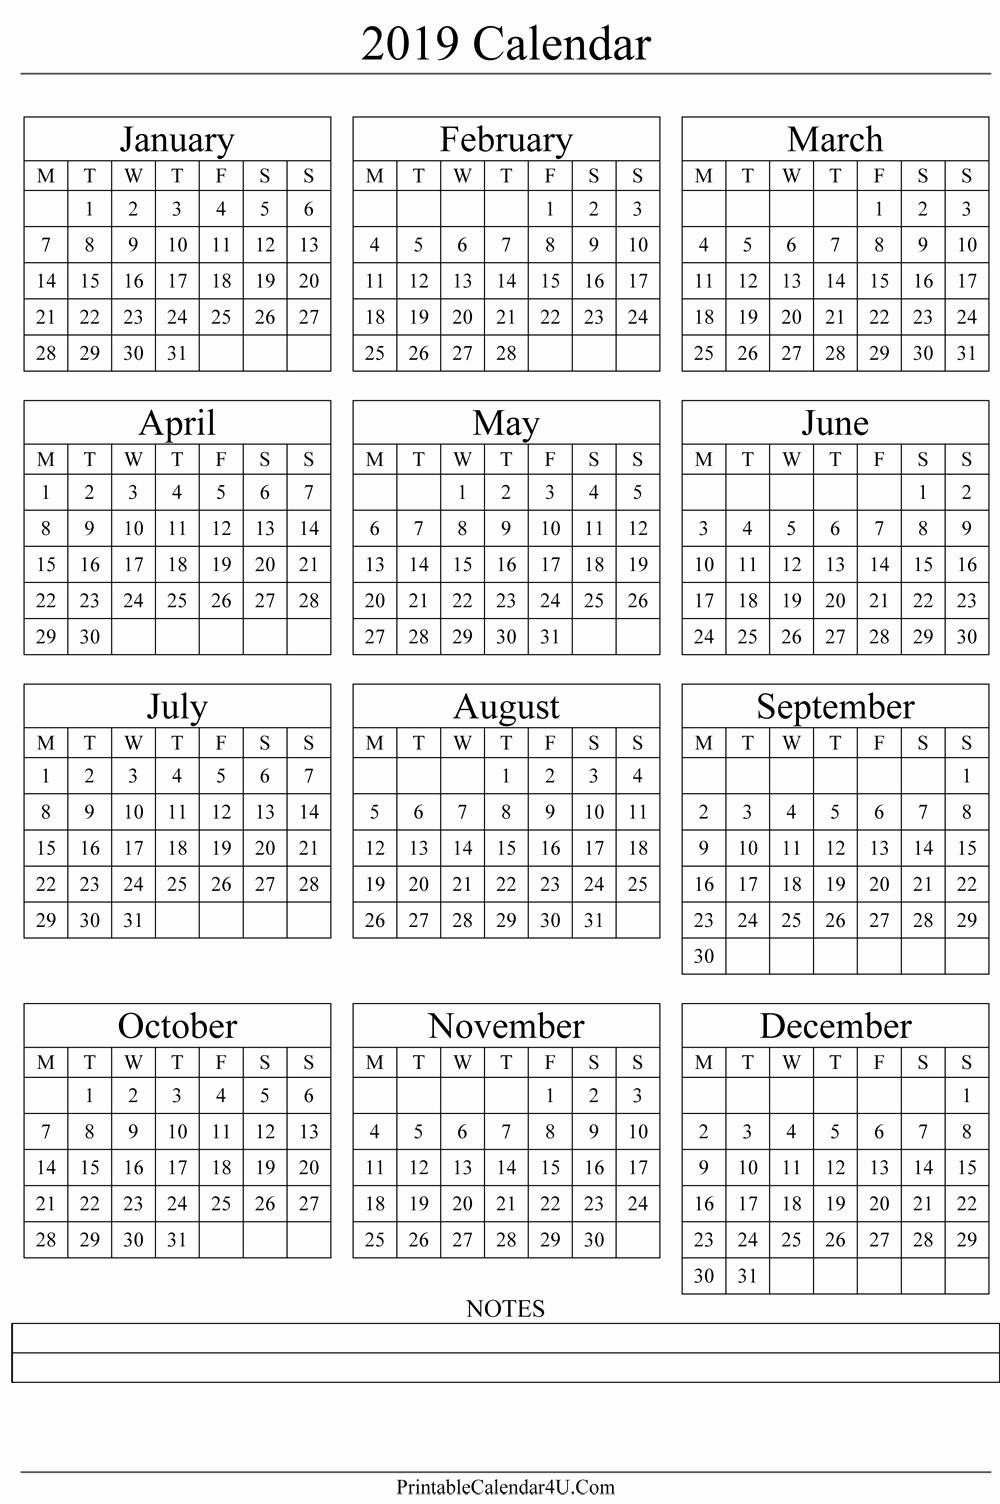 Printable Calendar 2018 and 2019 Inspirational Annual Calendar 2019 Portrait Printable Calendar 2019 2020